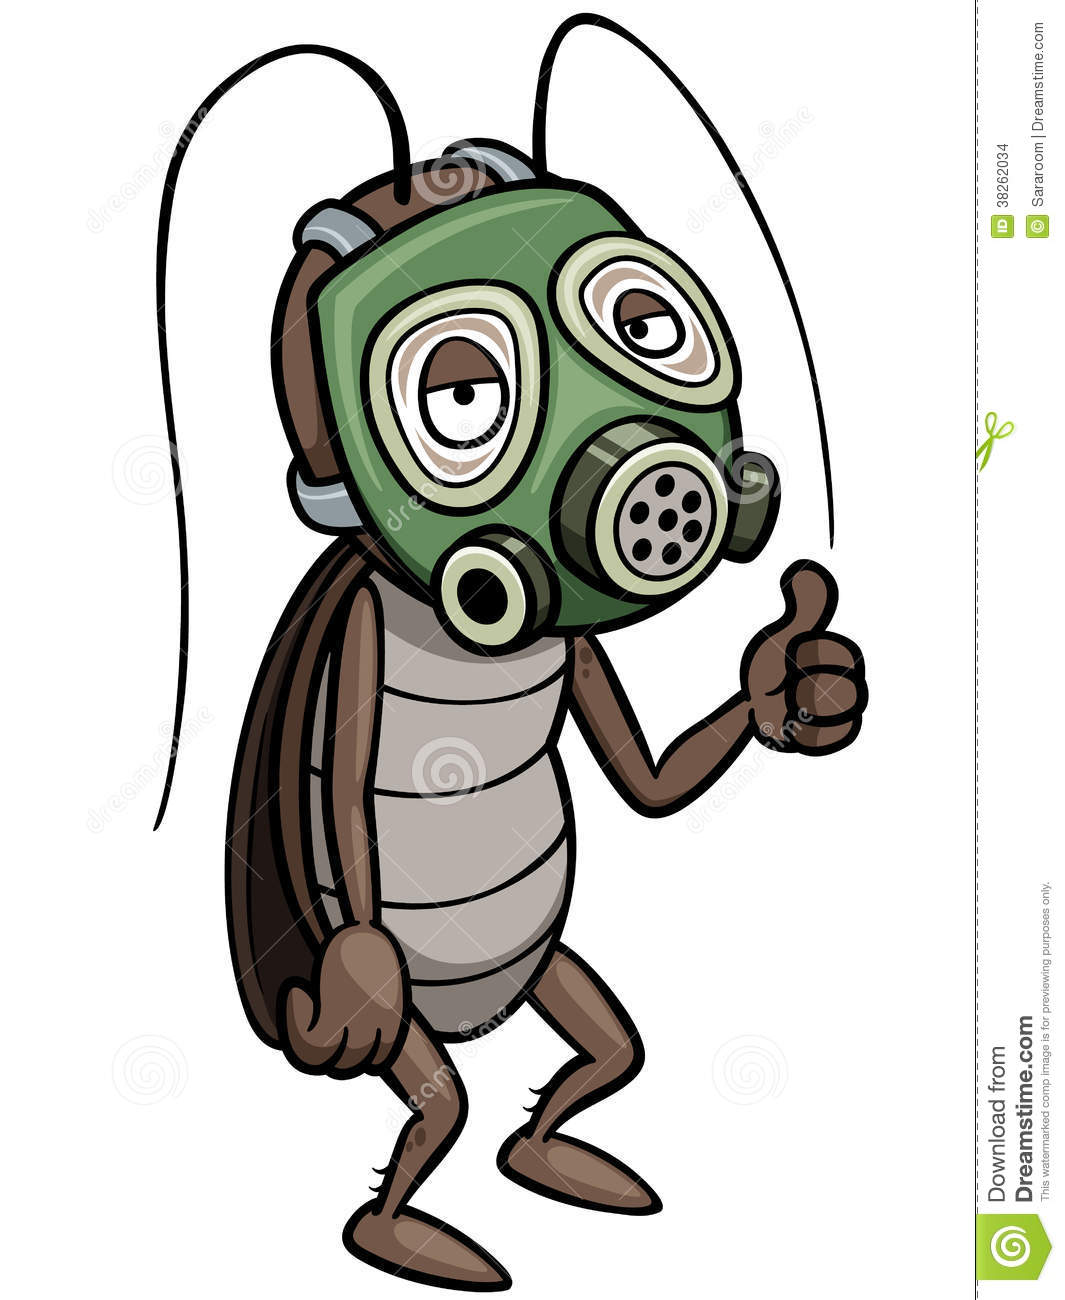 Cartoon Cockroach Stock Images - Image: 38262034